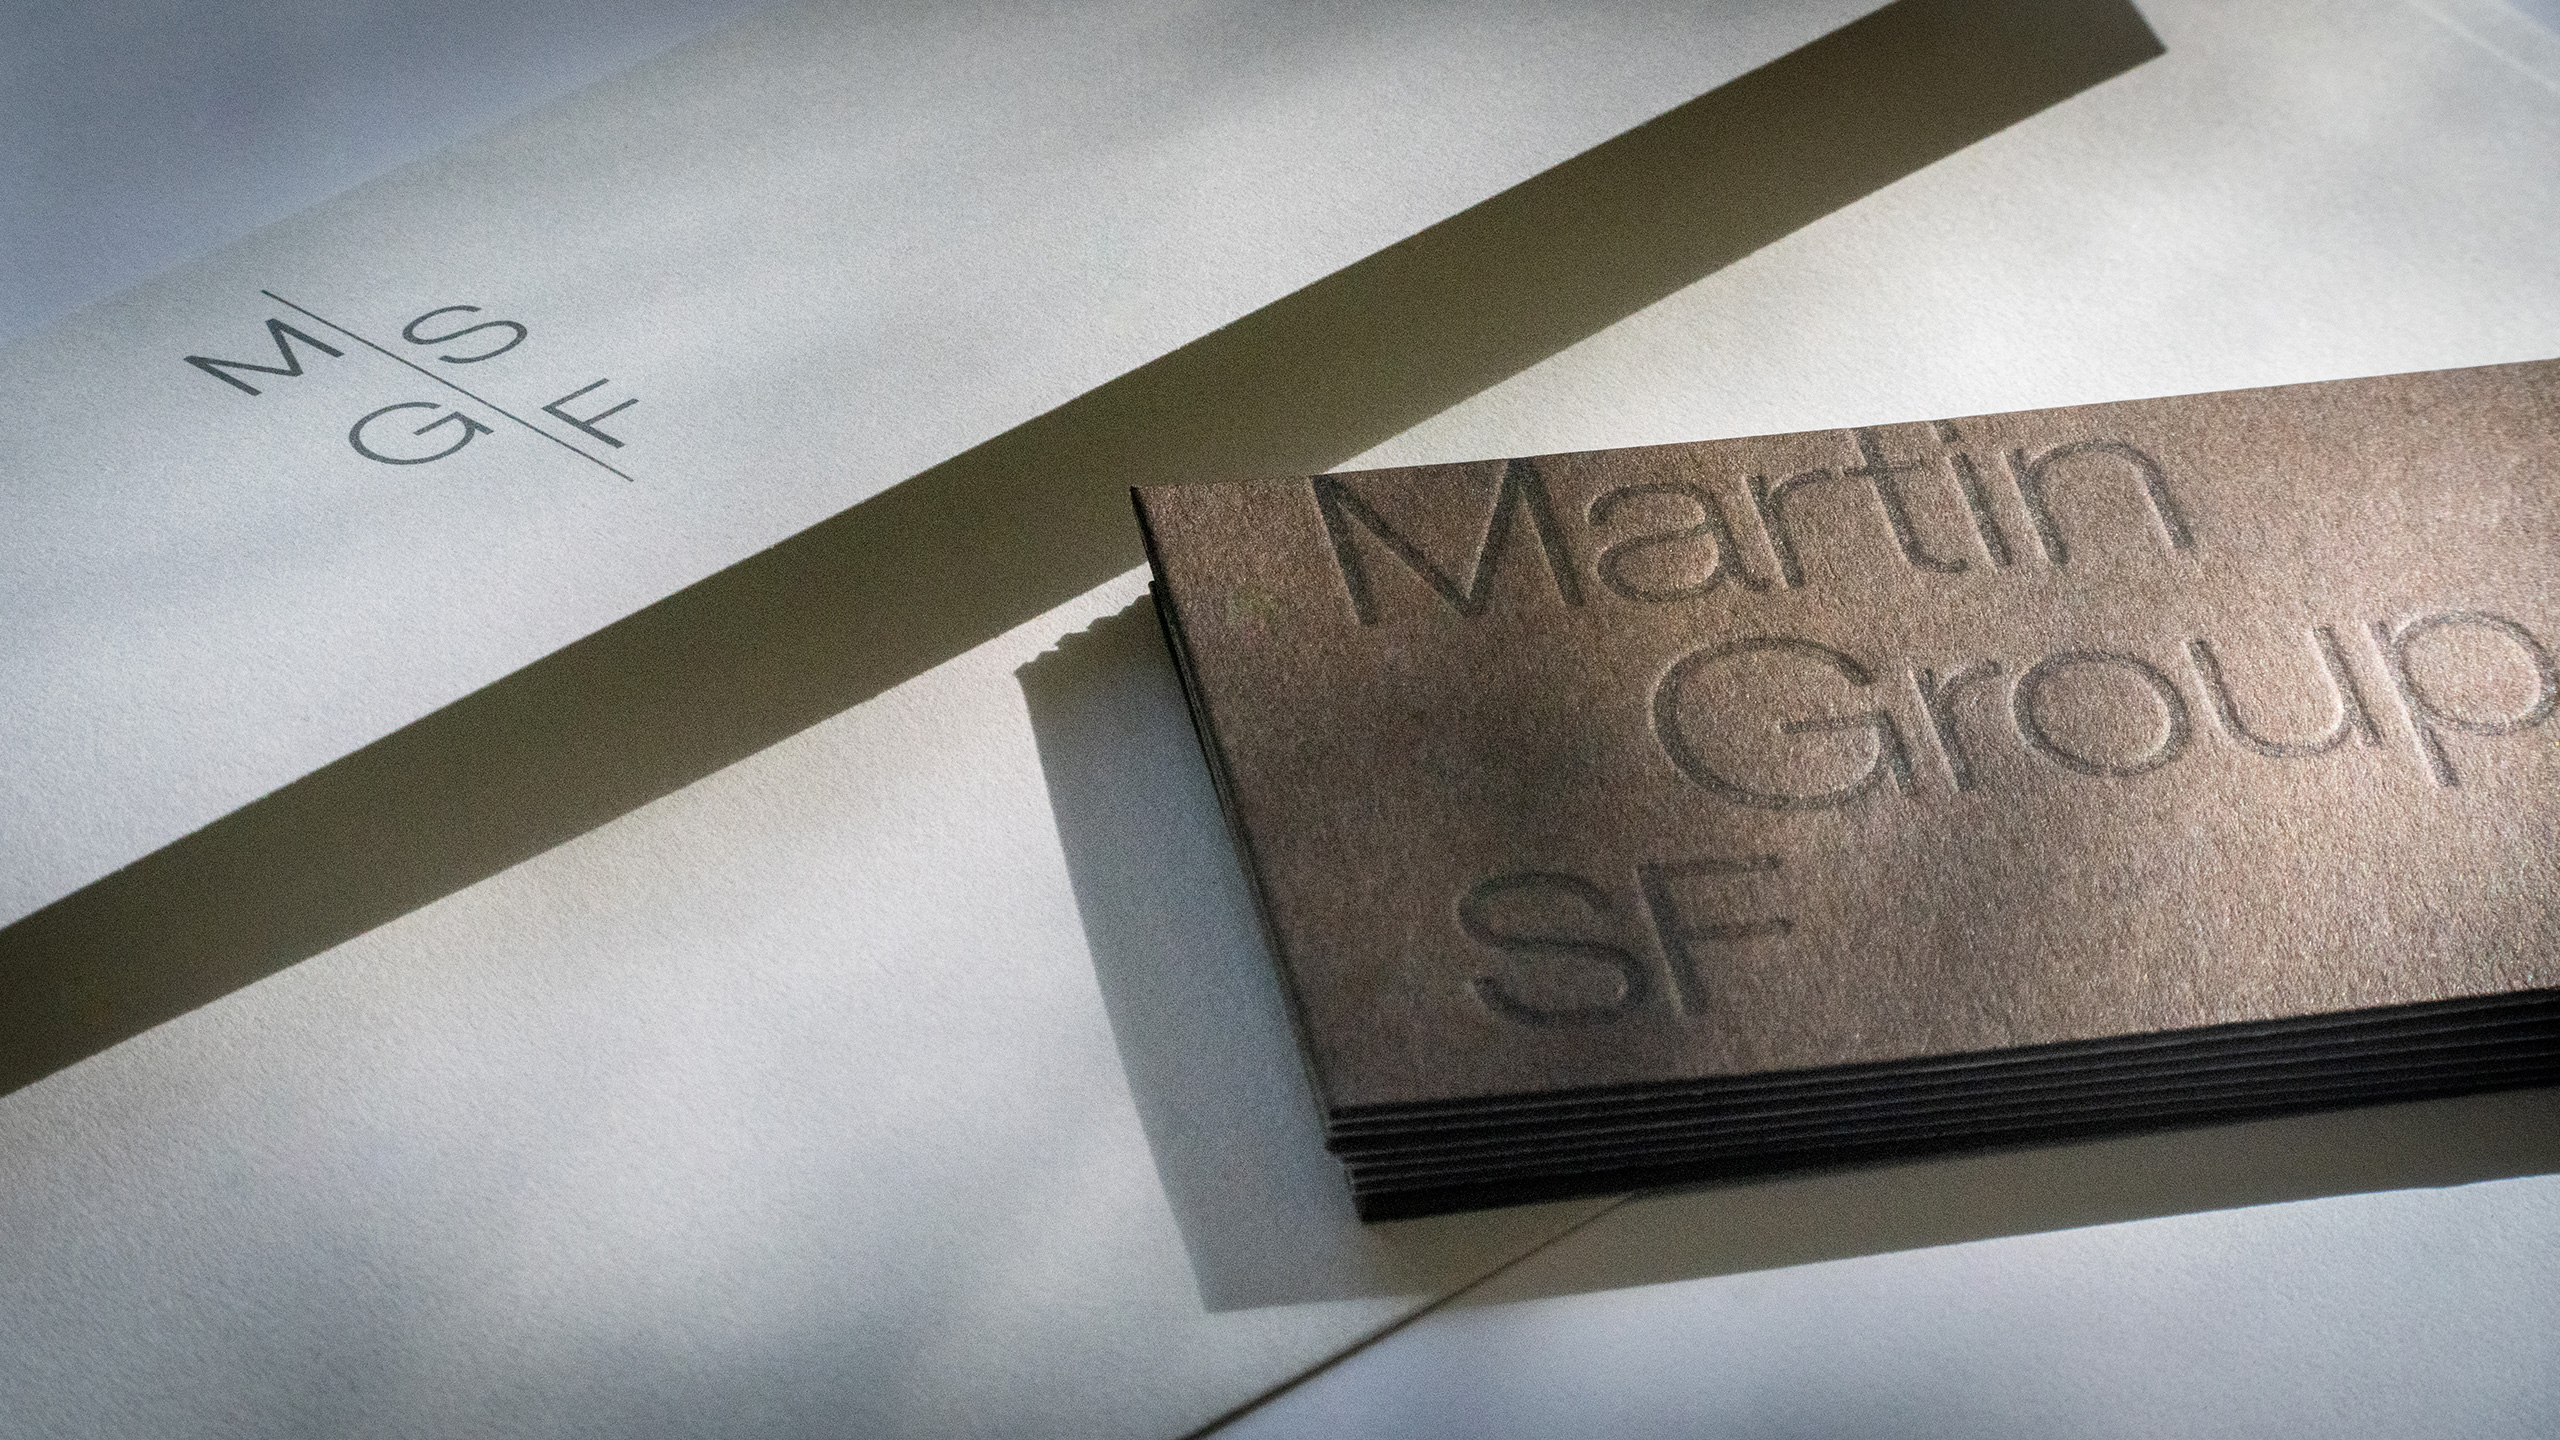 Martin Group SF stationery